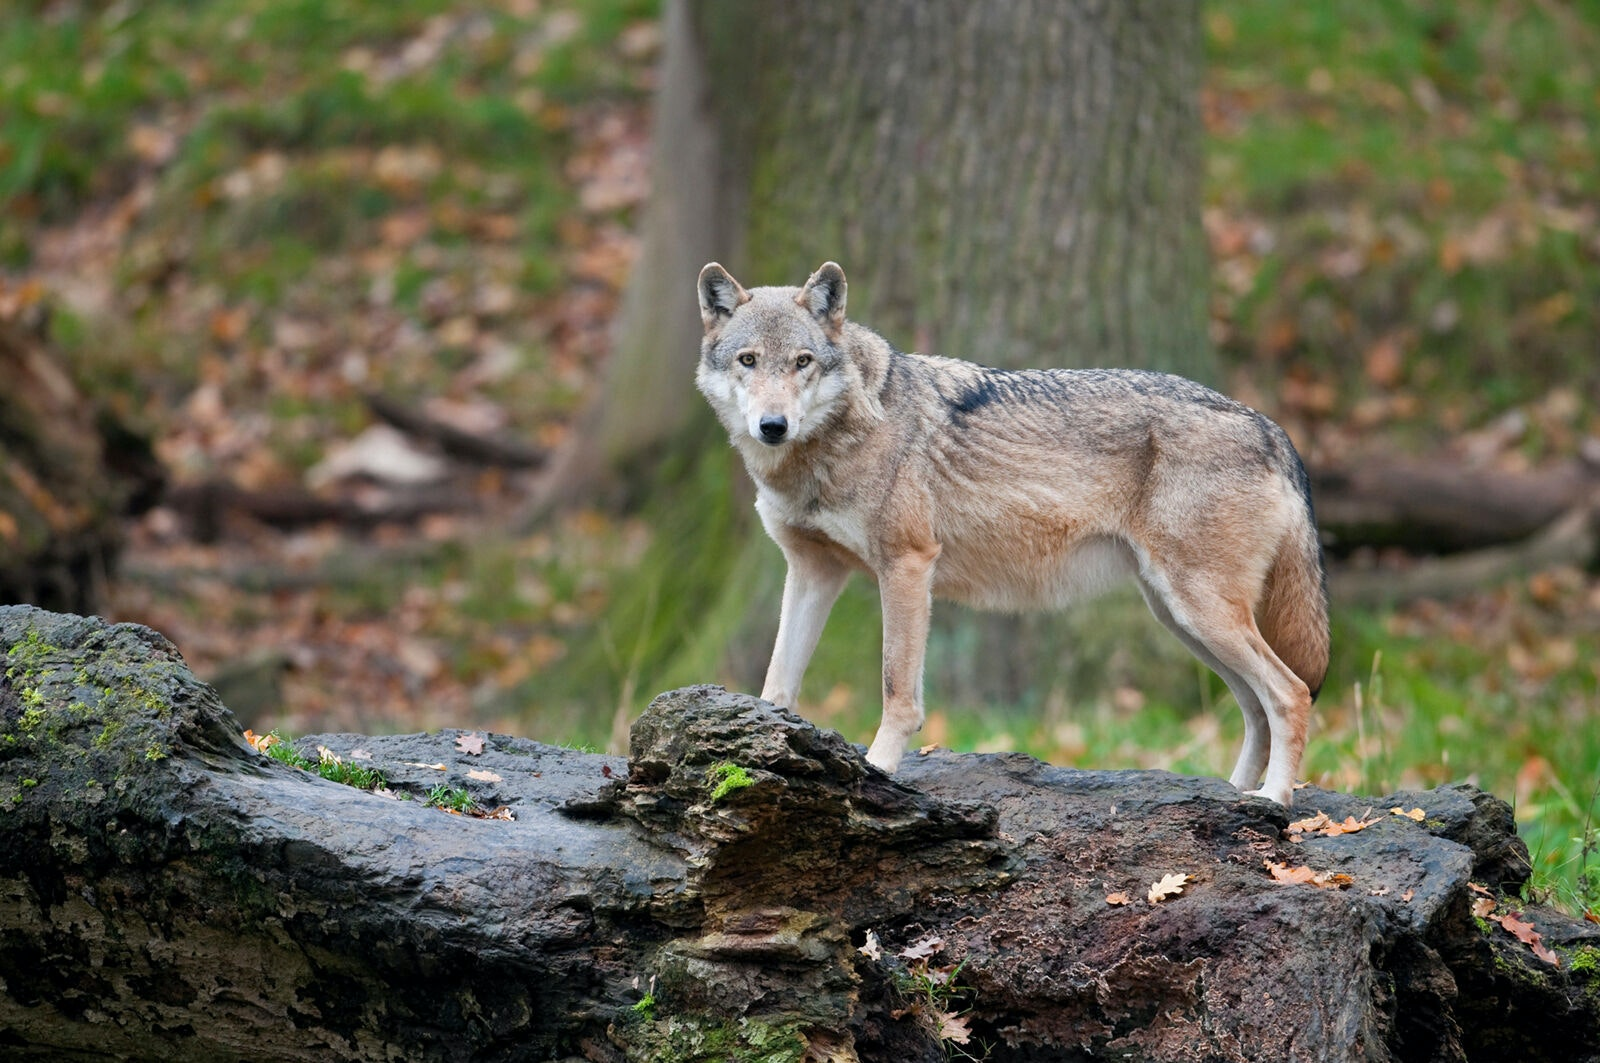 Modern wolves share a common ancestry with the domestic dog, but their hunting range and behavior may have been significantly altered by the threat from humans.